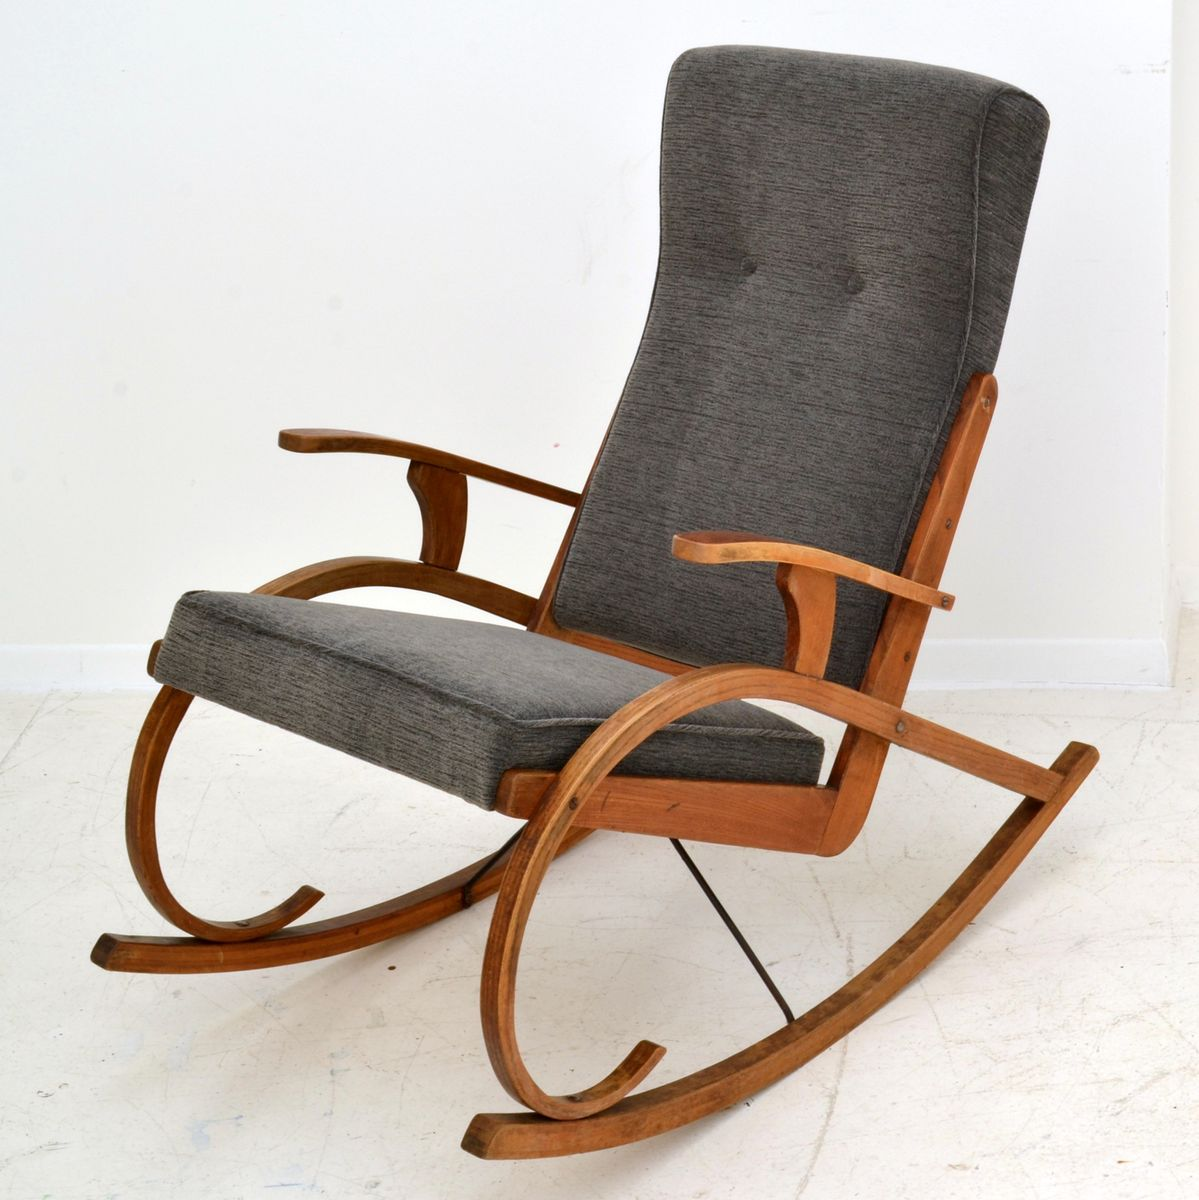 Captivating Czech Modernist Rocking Chair In Bentwood, 1930s